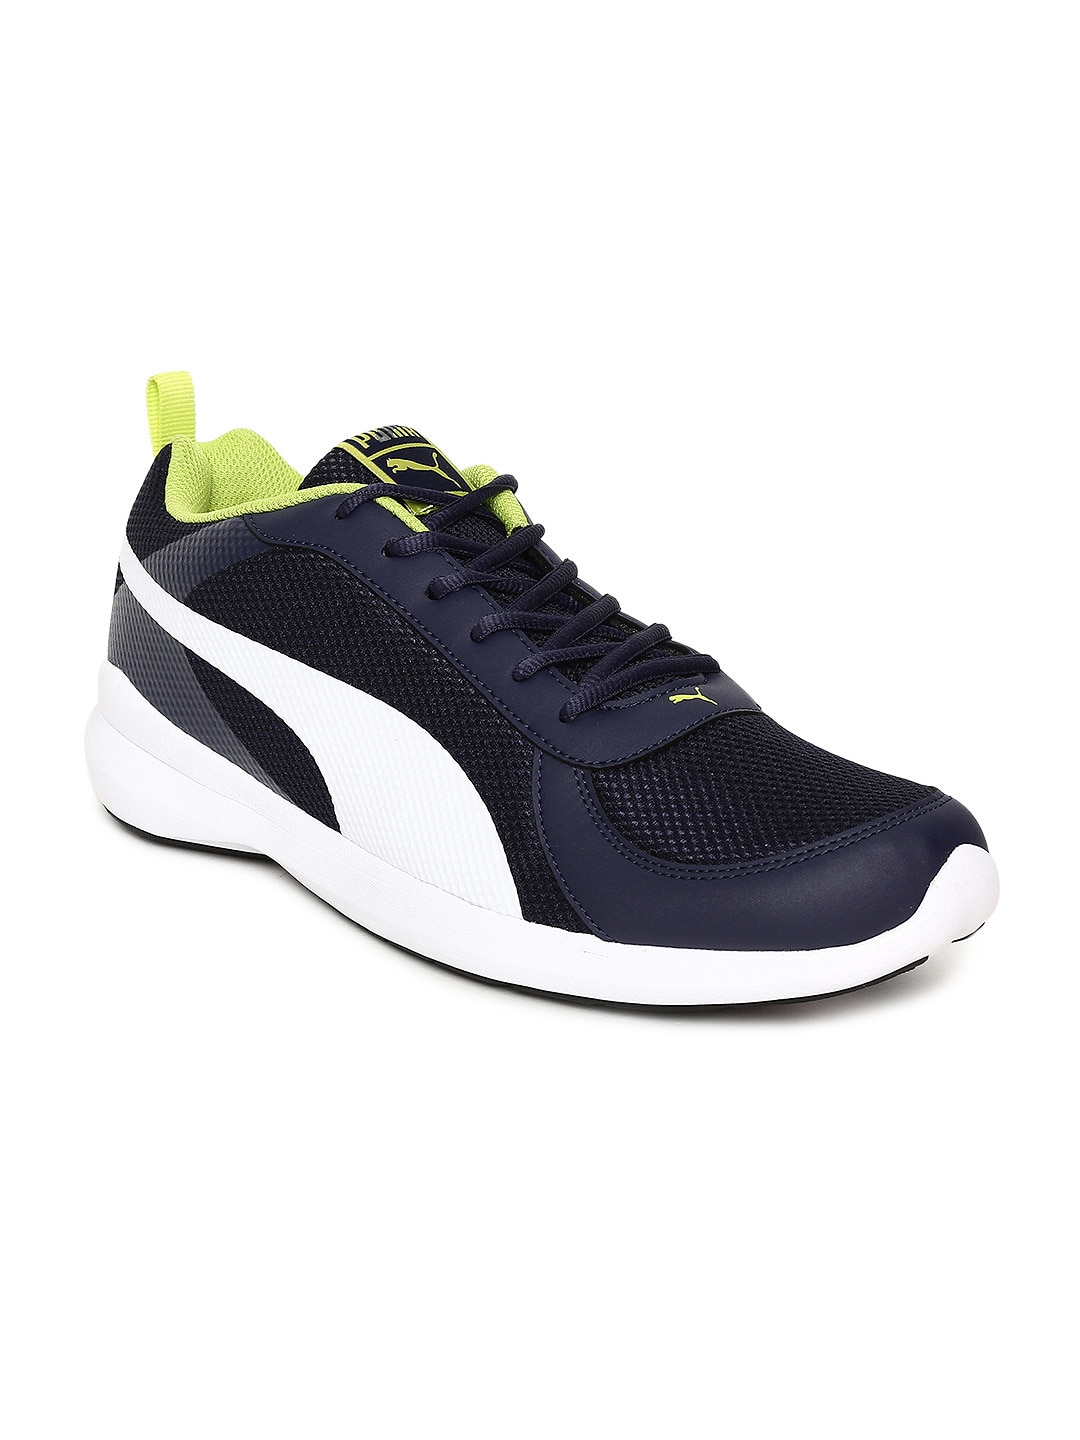 82d4aa0700fb Buy Puma Men Black Ridge Running Shoes - Sports Shoes for Men ...